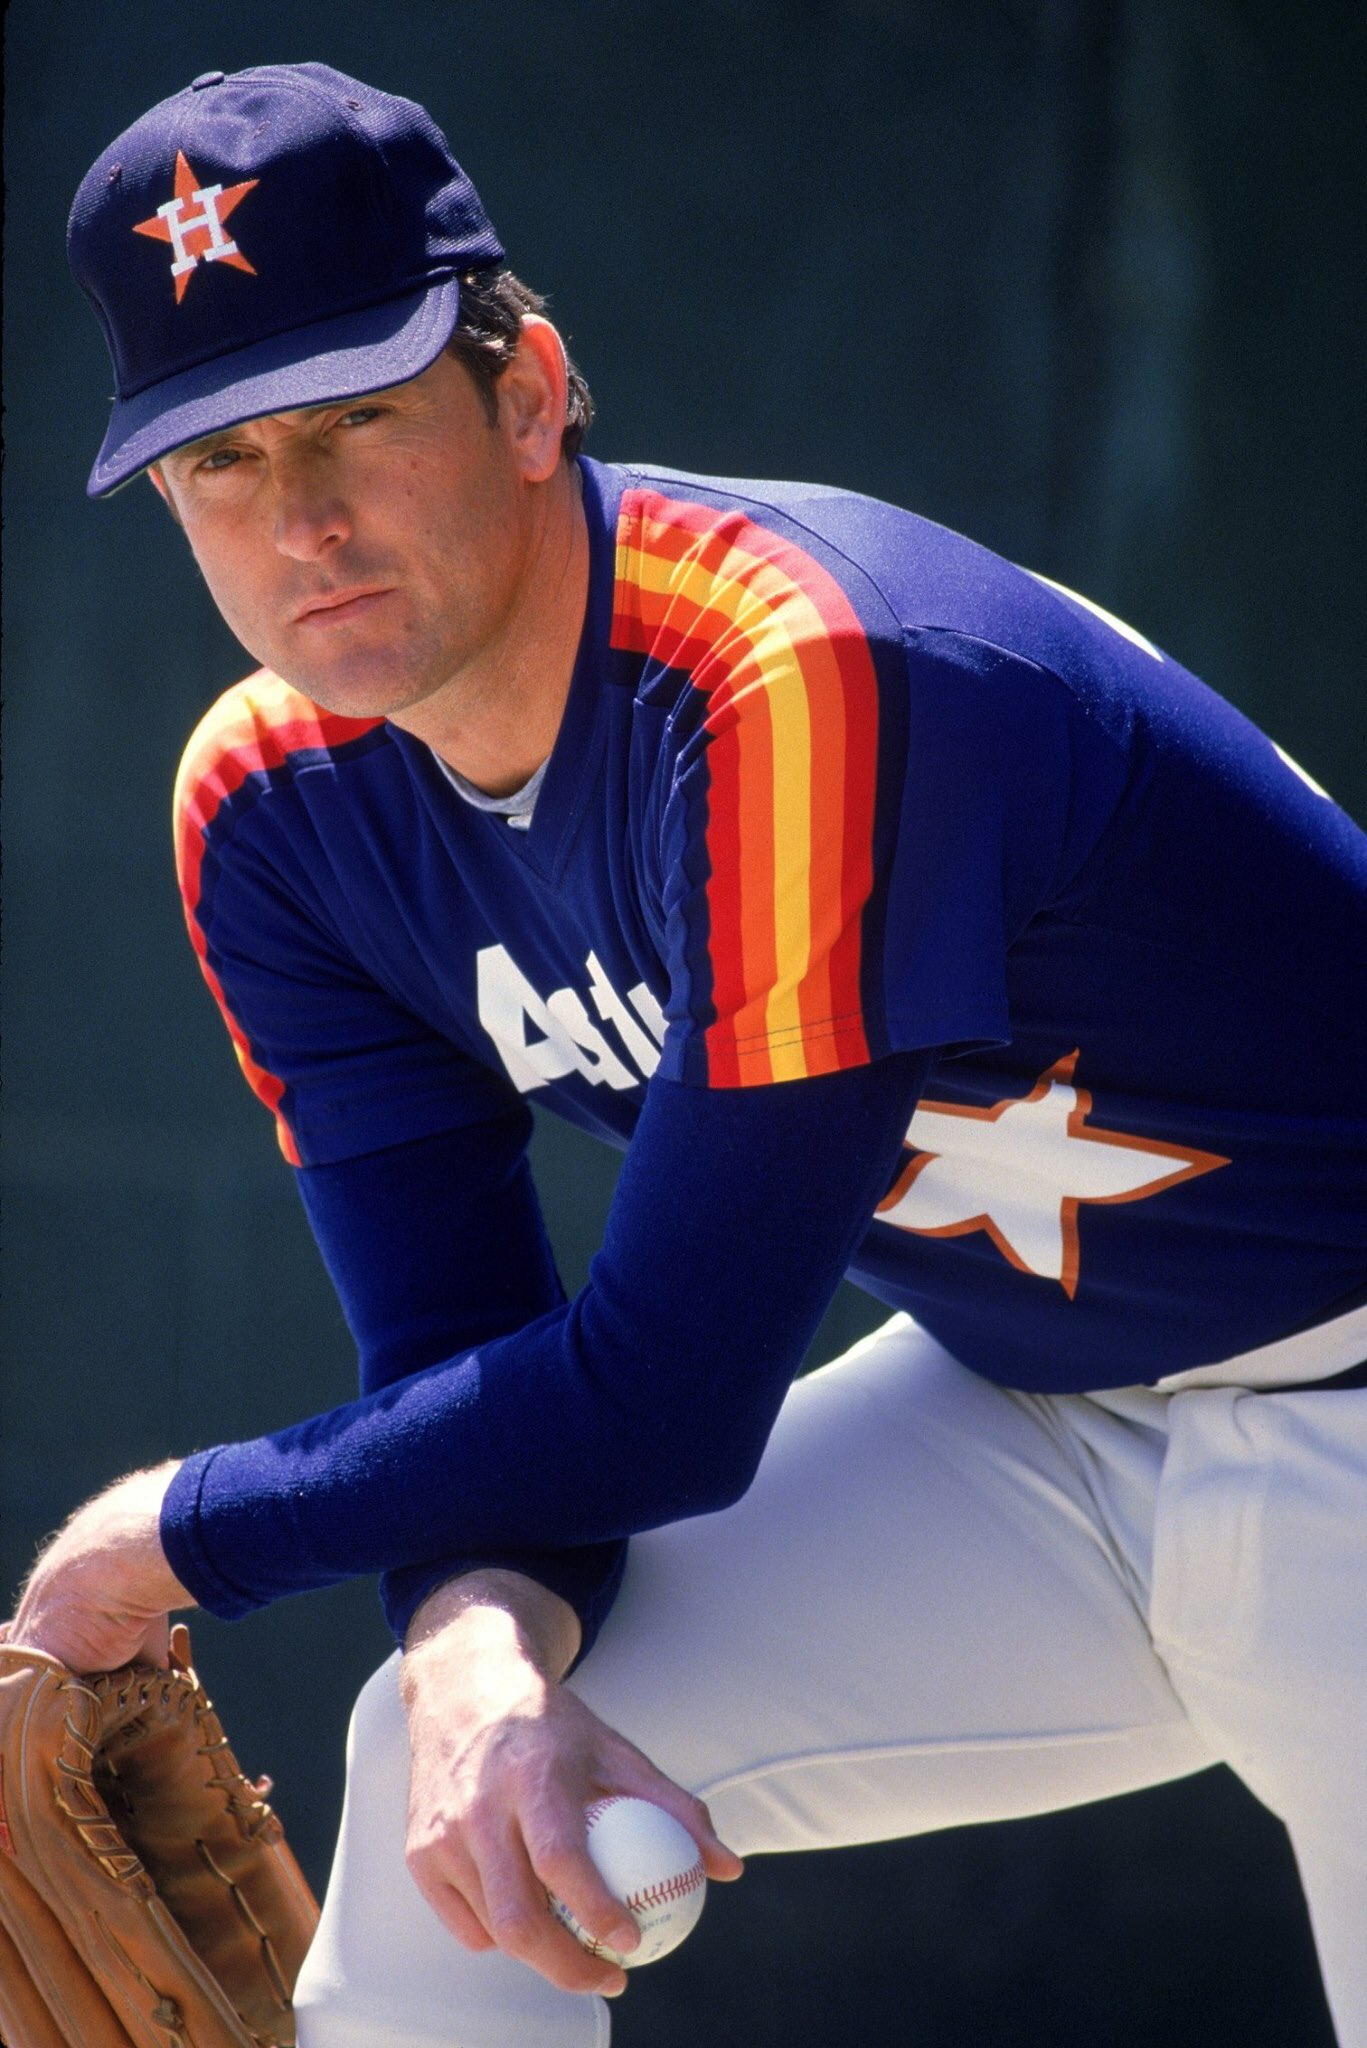 Happy Birthday Nolan Ryan